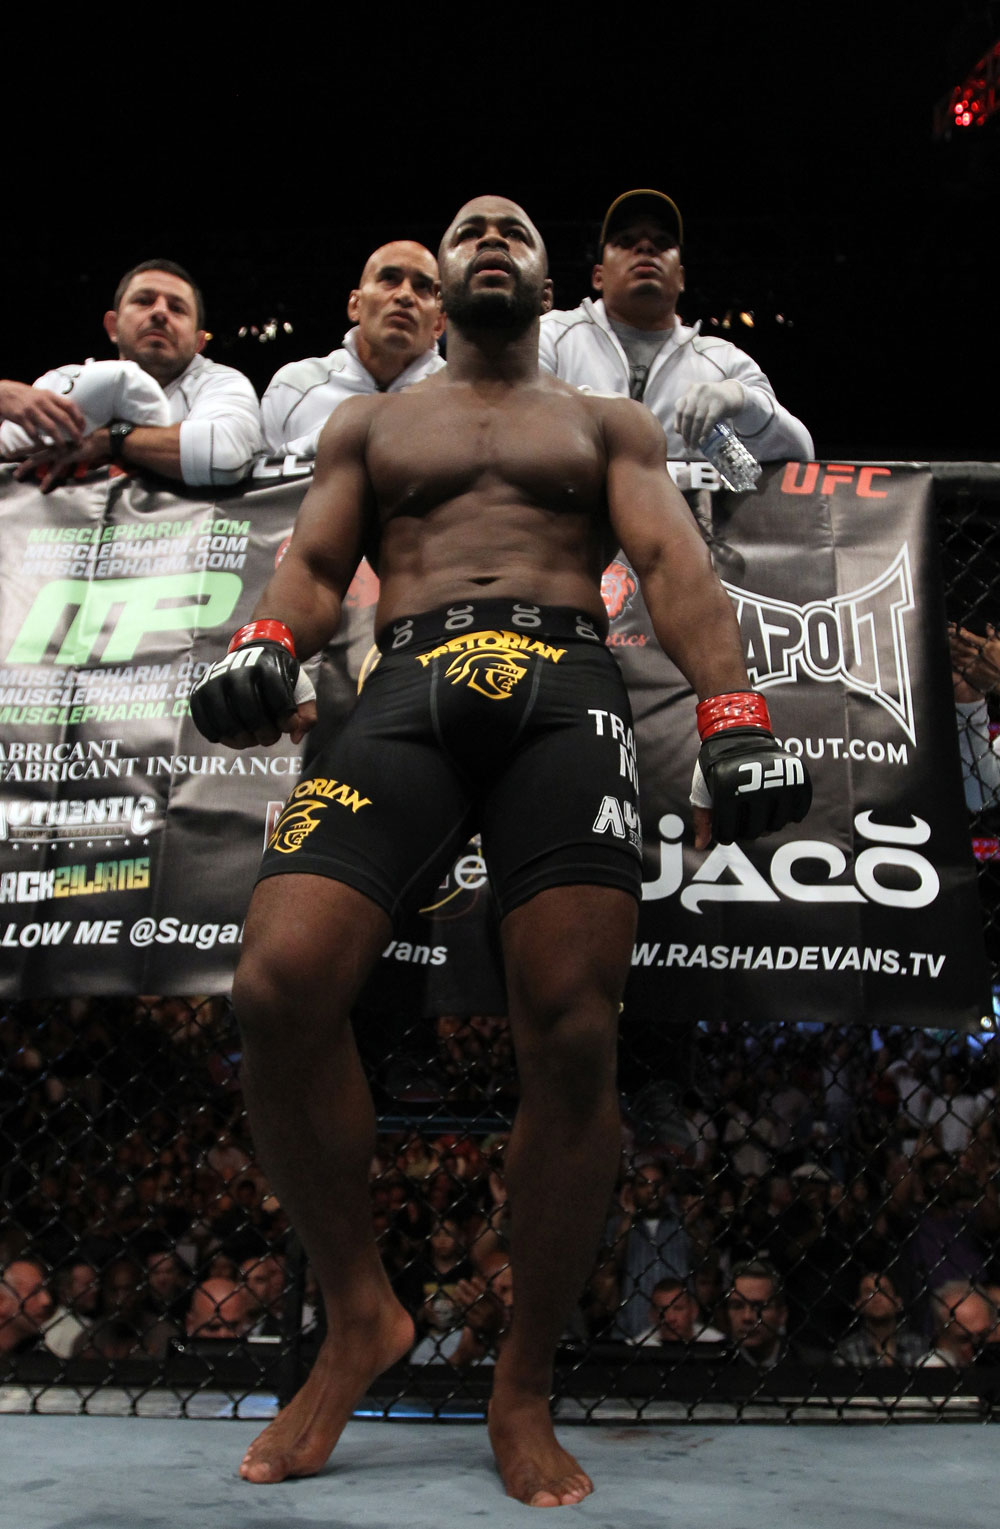 UFC 133: Rashad Evans